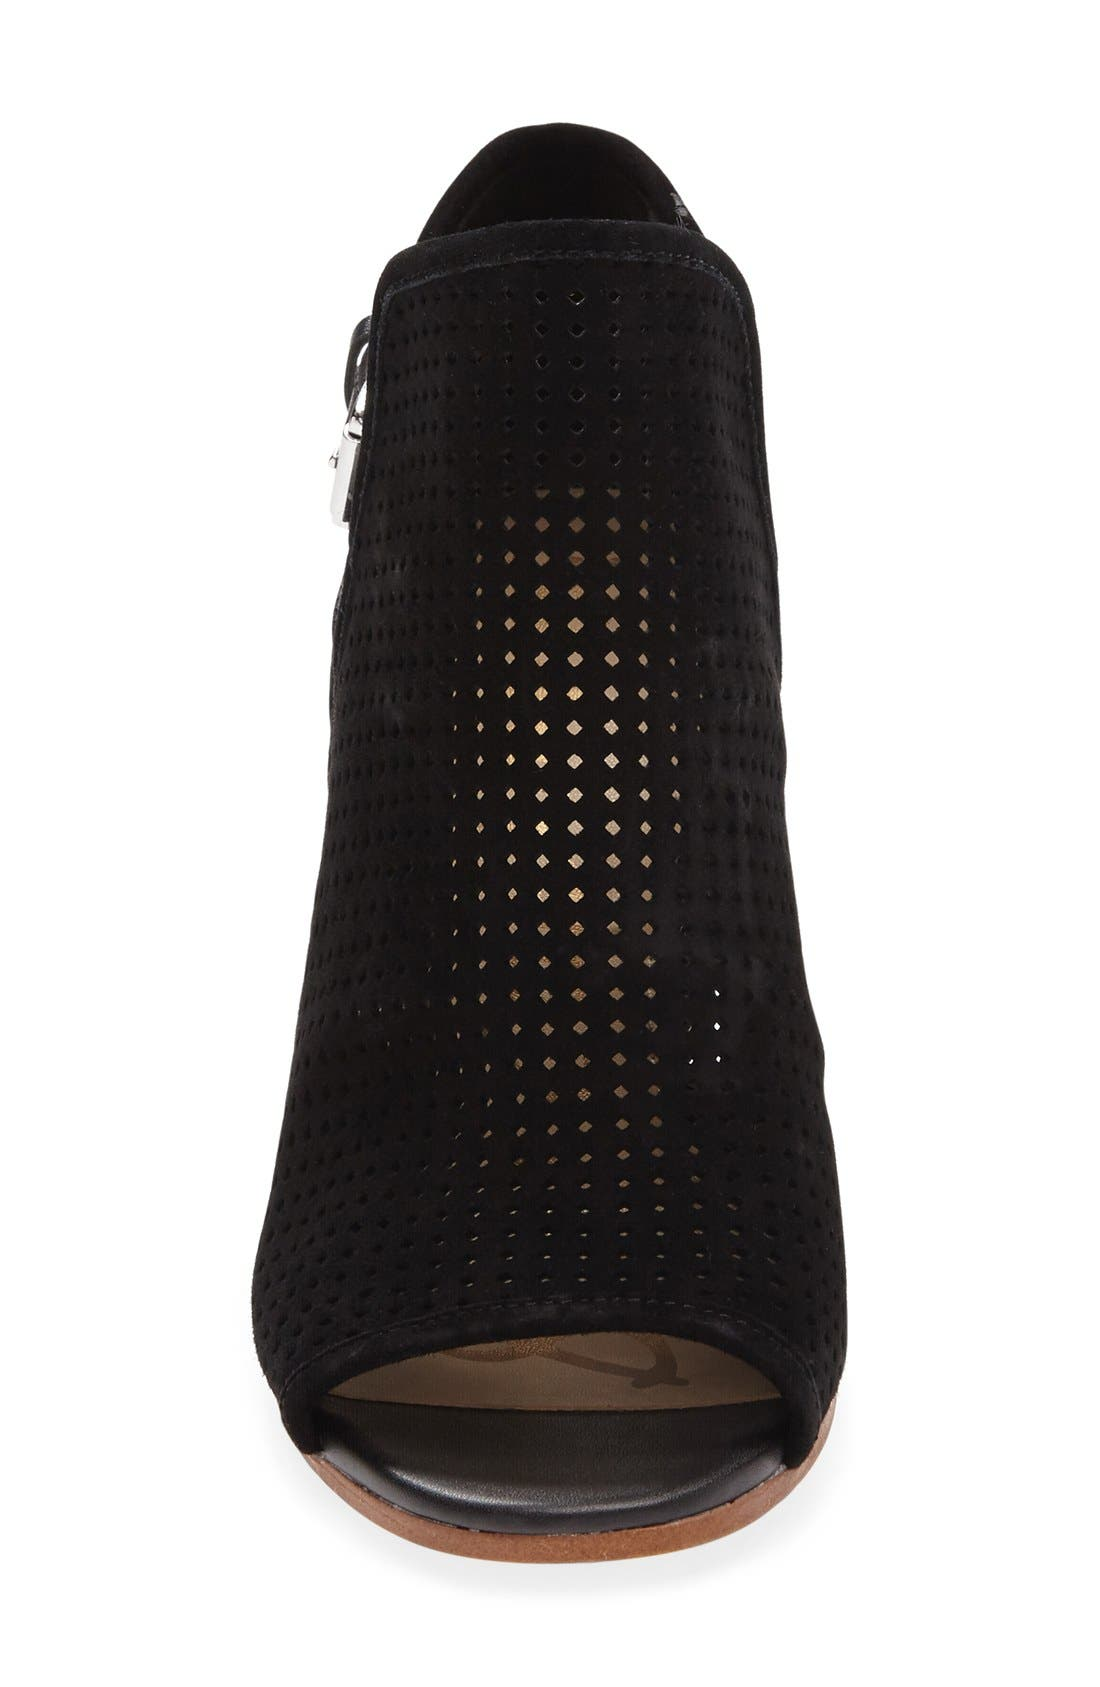 Alternate Image 3  - Sam Edelman Easton Perforated Open Toe Bootie (Women)